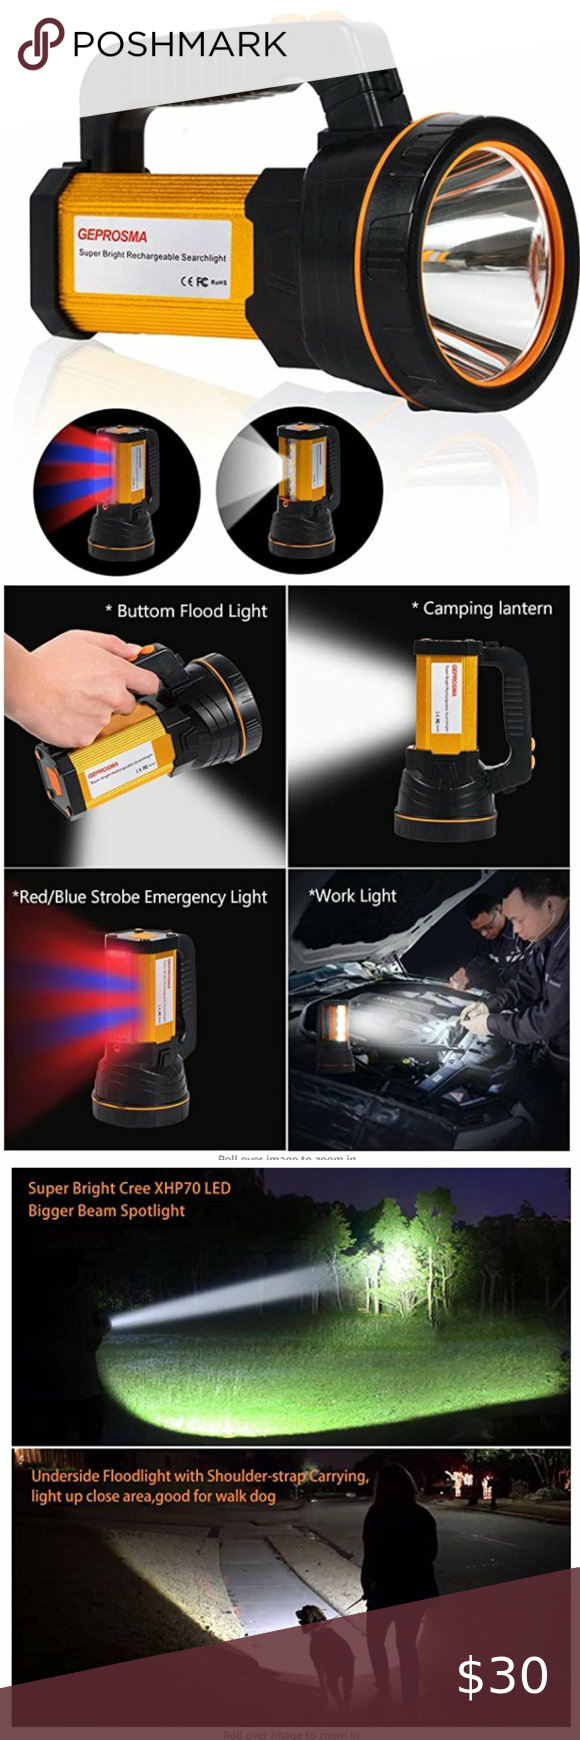 High Lumen Rechargeable Spotlight Flashlight 1 2020 High Power Handheld Multifunctions Led Flashlight Super Bright Heavy Duty Led S